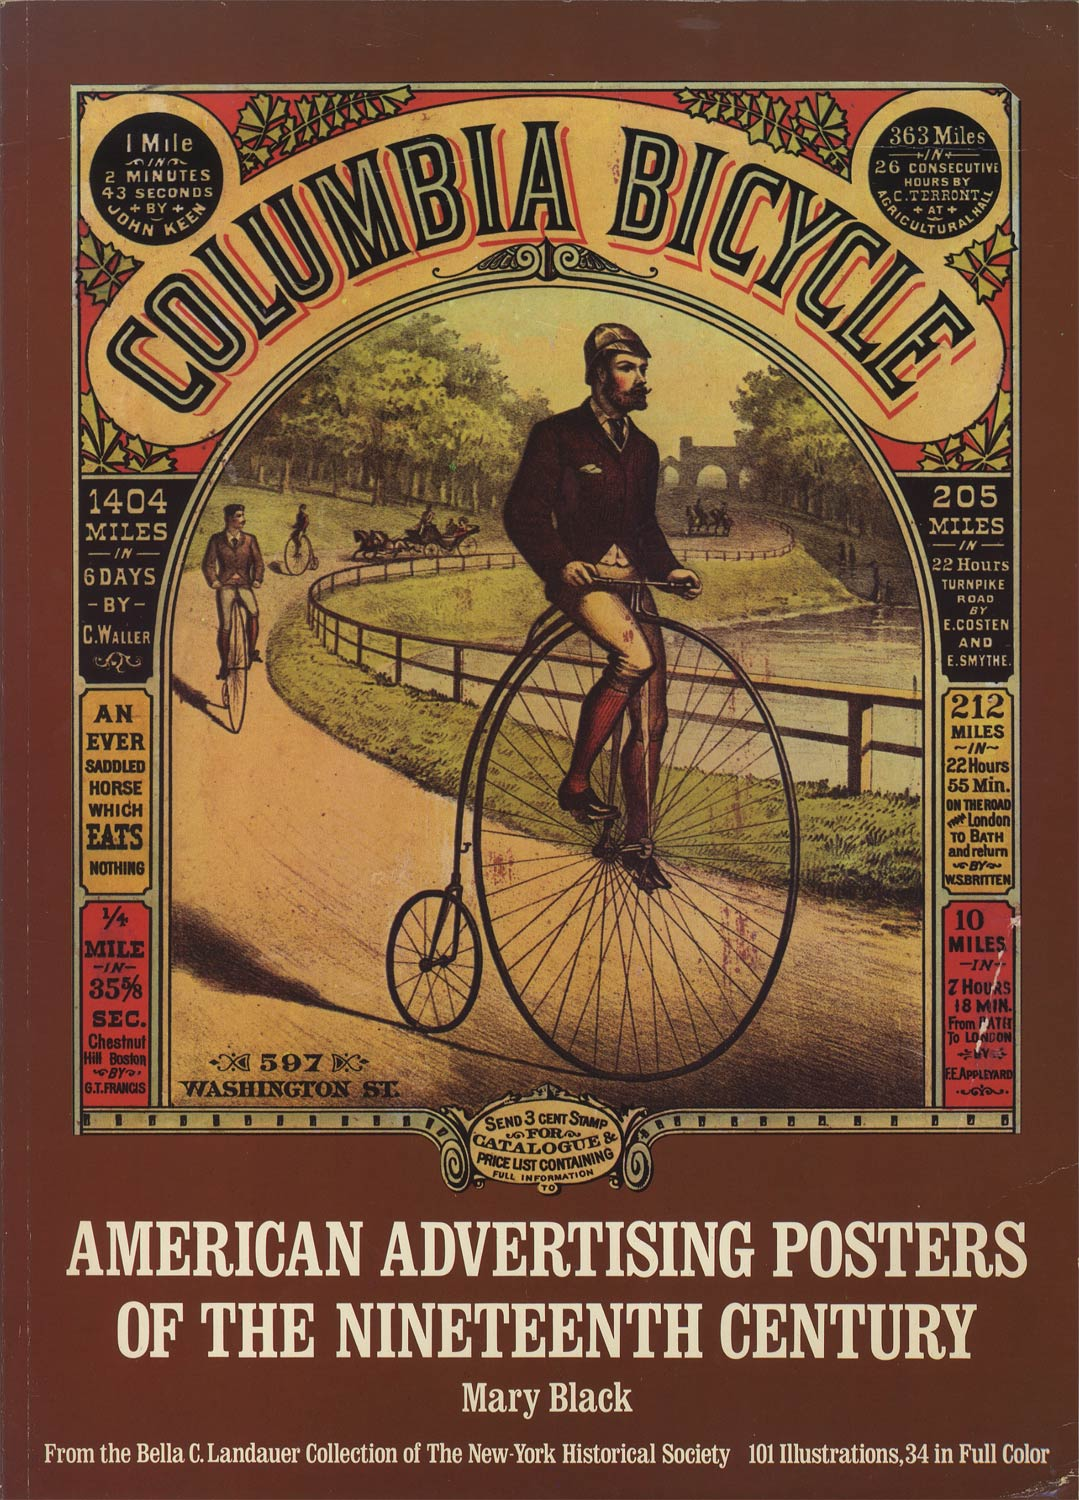 American Advertising Posters of the Nineteenth Century From the Bella C. Landauer Collection of the New-York Historical Society[image1]